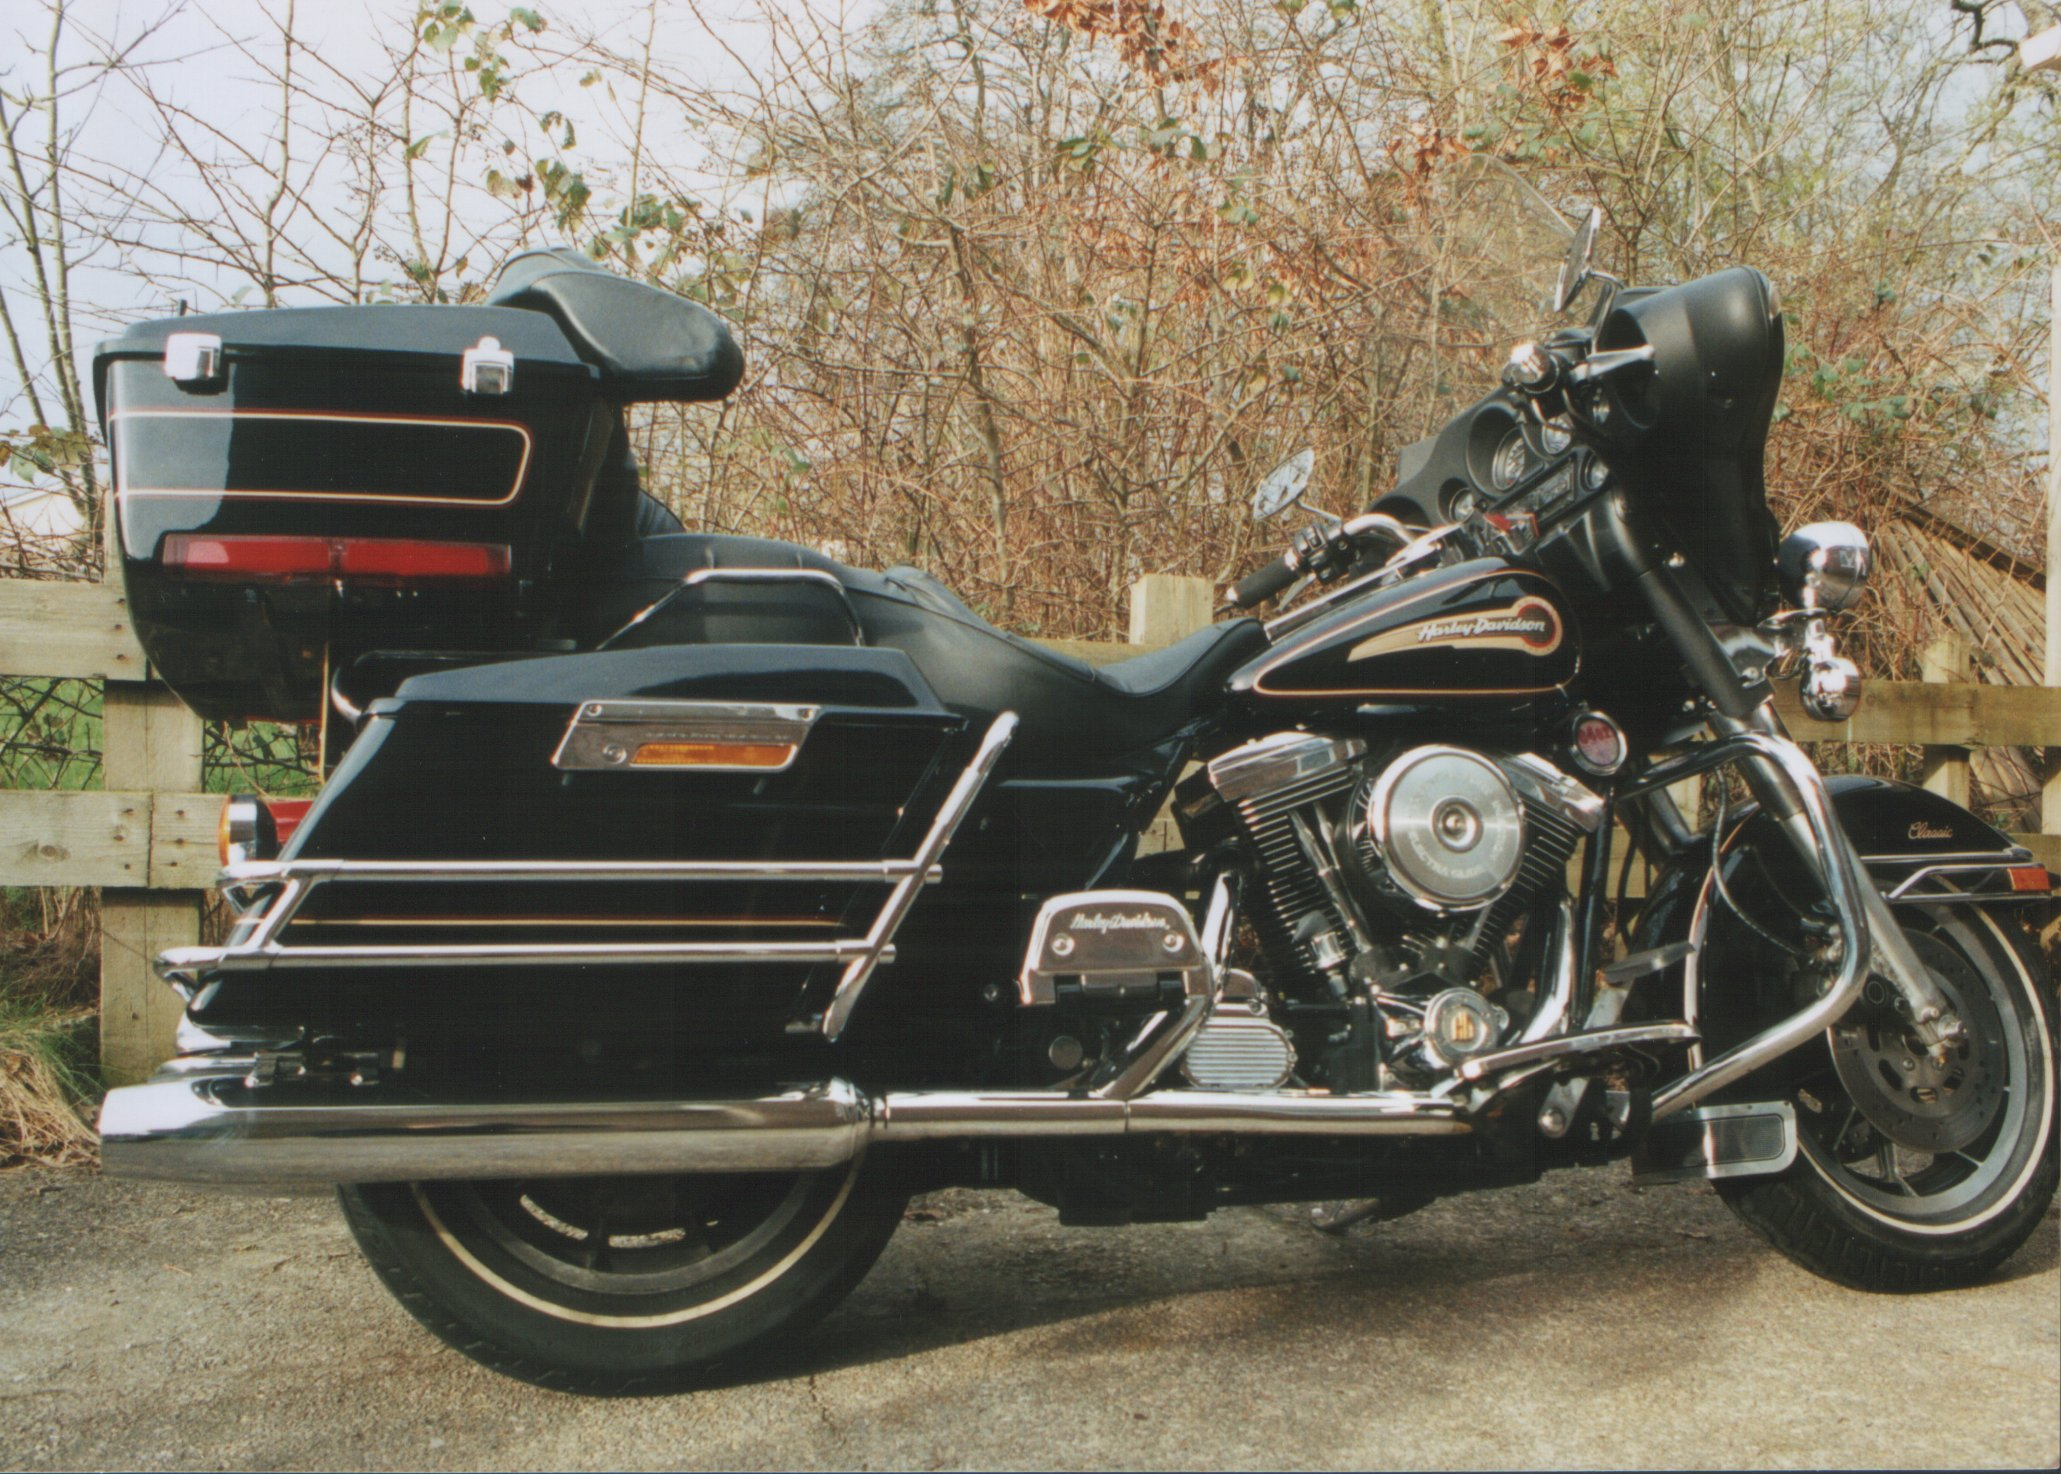 Harley-Davidson FLHTC 1340 Electra Glide Classic 1985 #1